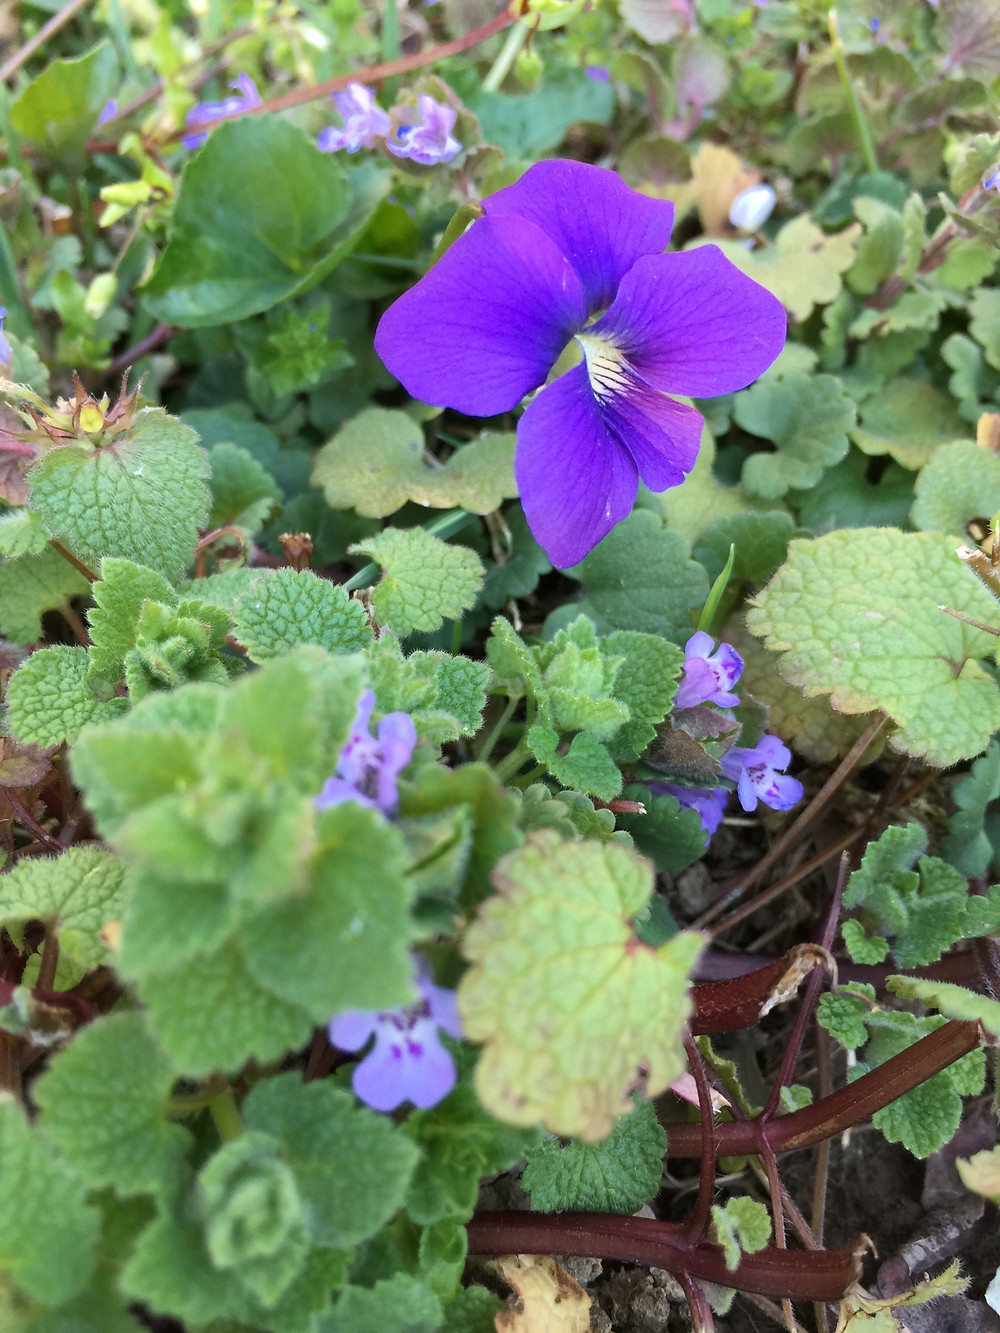 Violets and Ivy